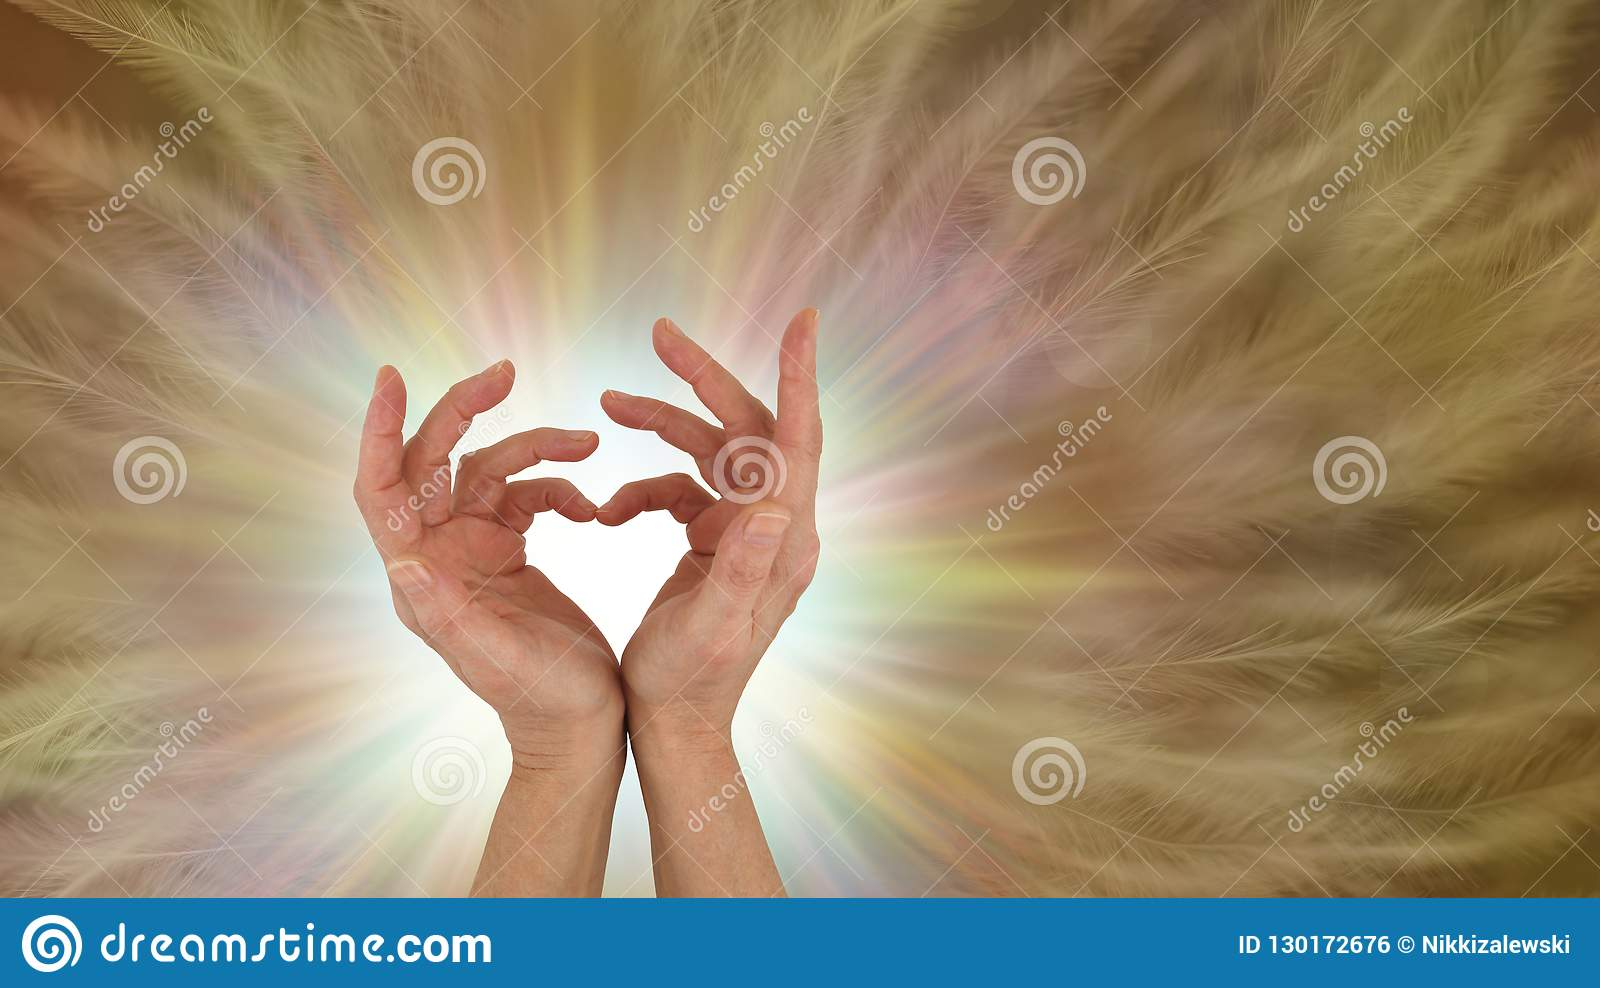 Sending out unconditional love healing vibes